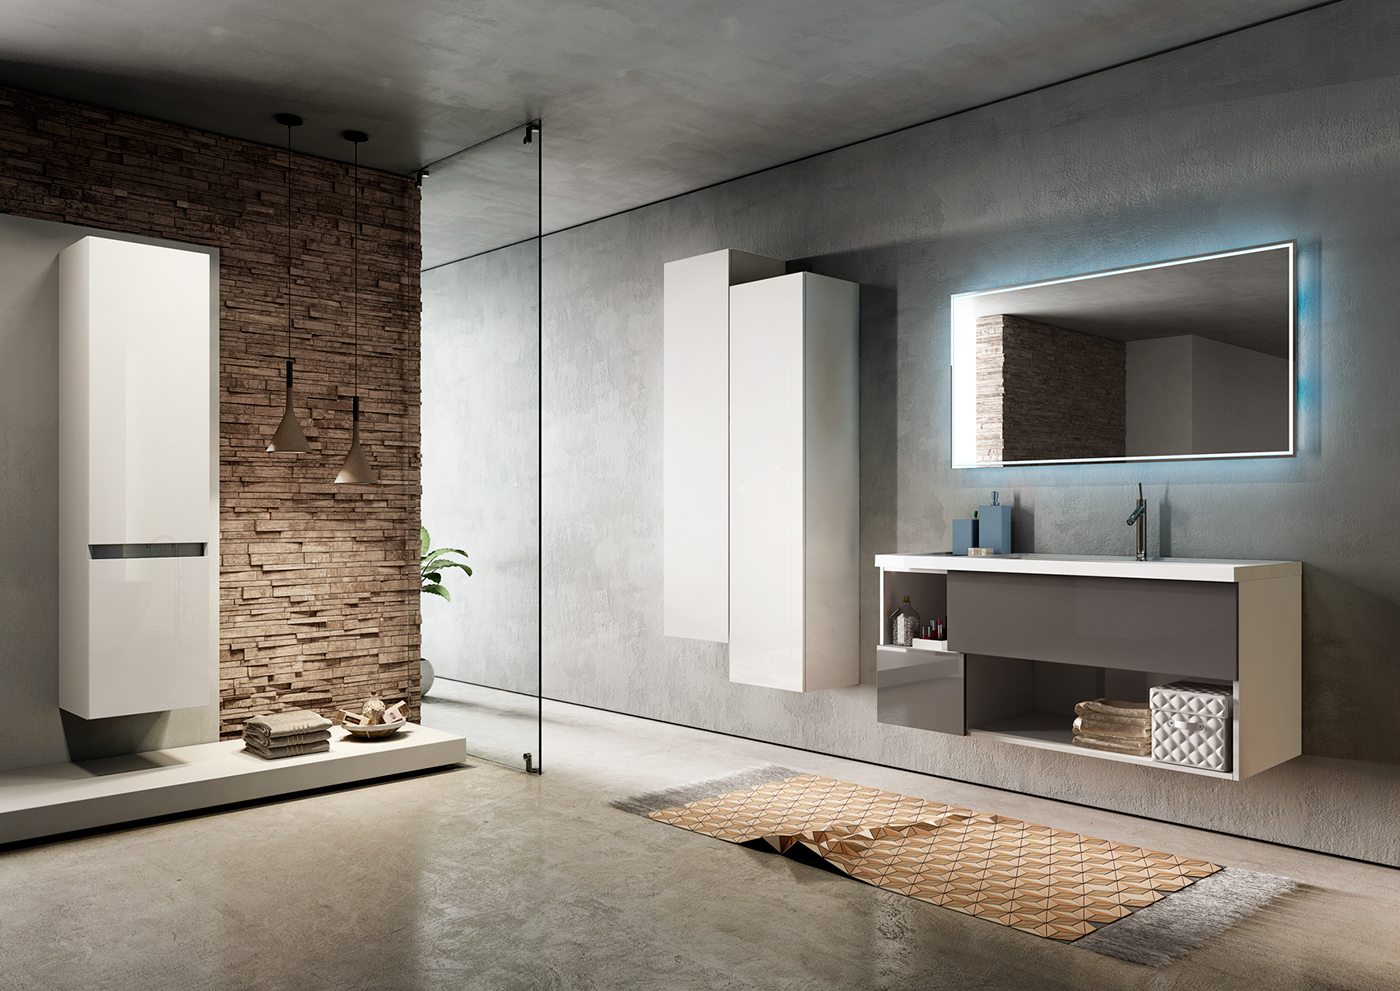 Cgi bathroom furniture malib on behance for Bathroom design 3d model